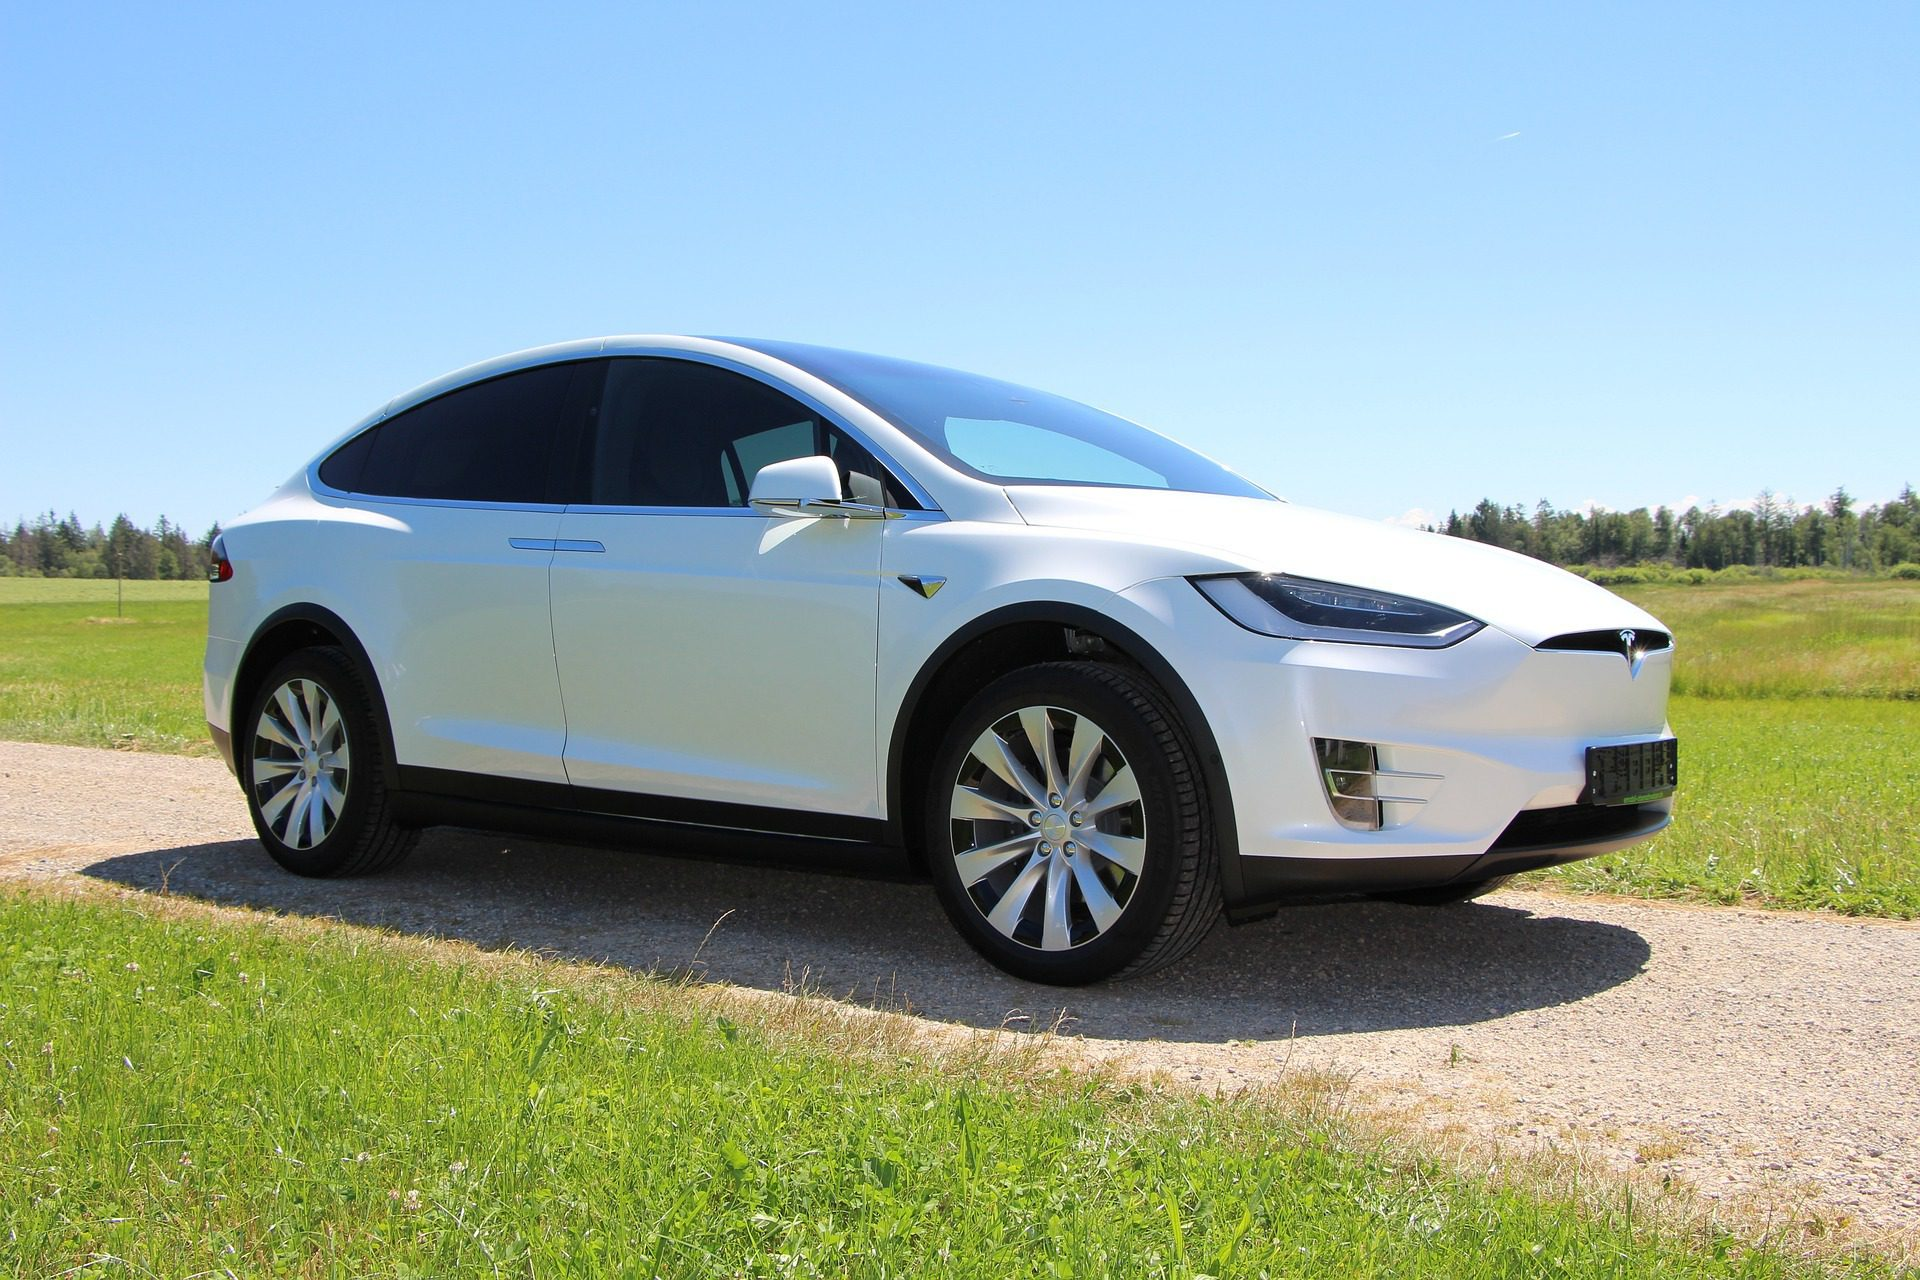 Making the Case for the Electric Car